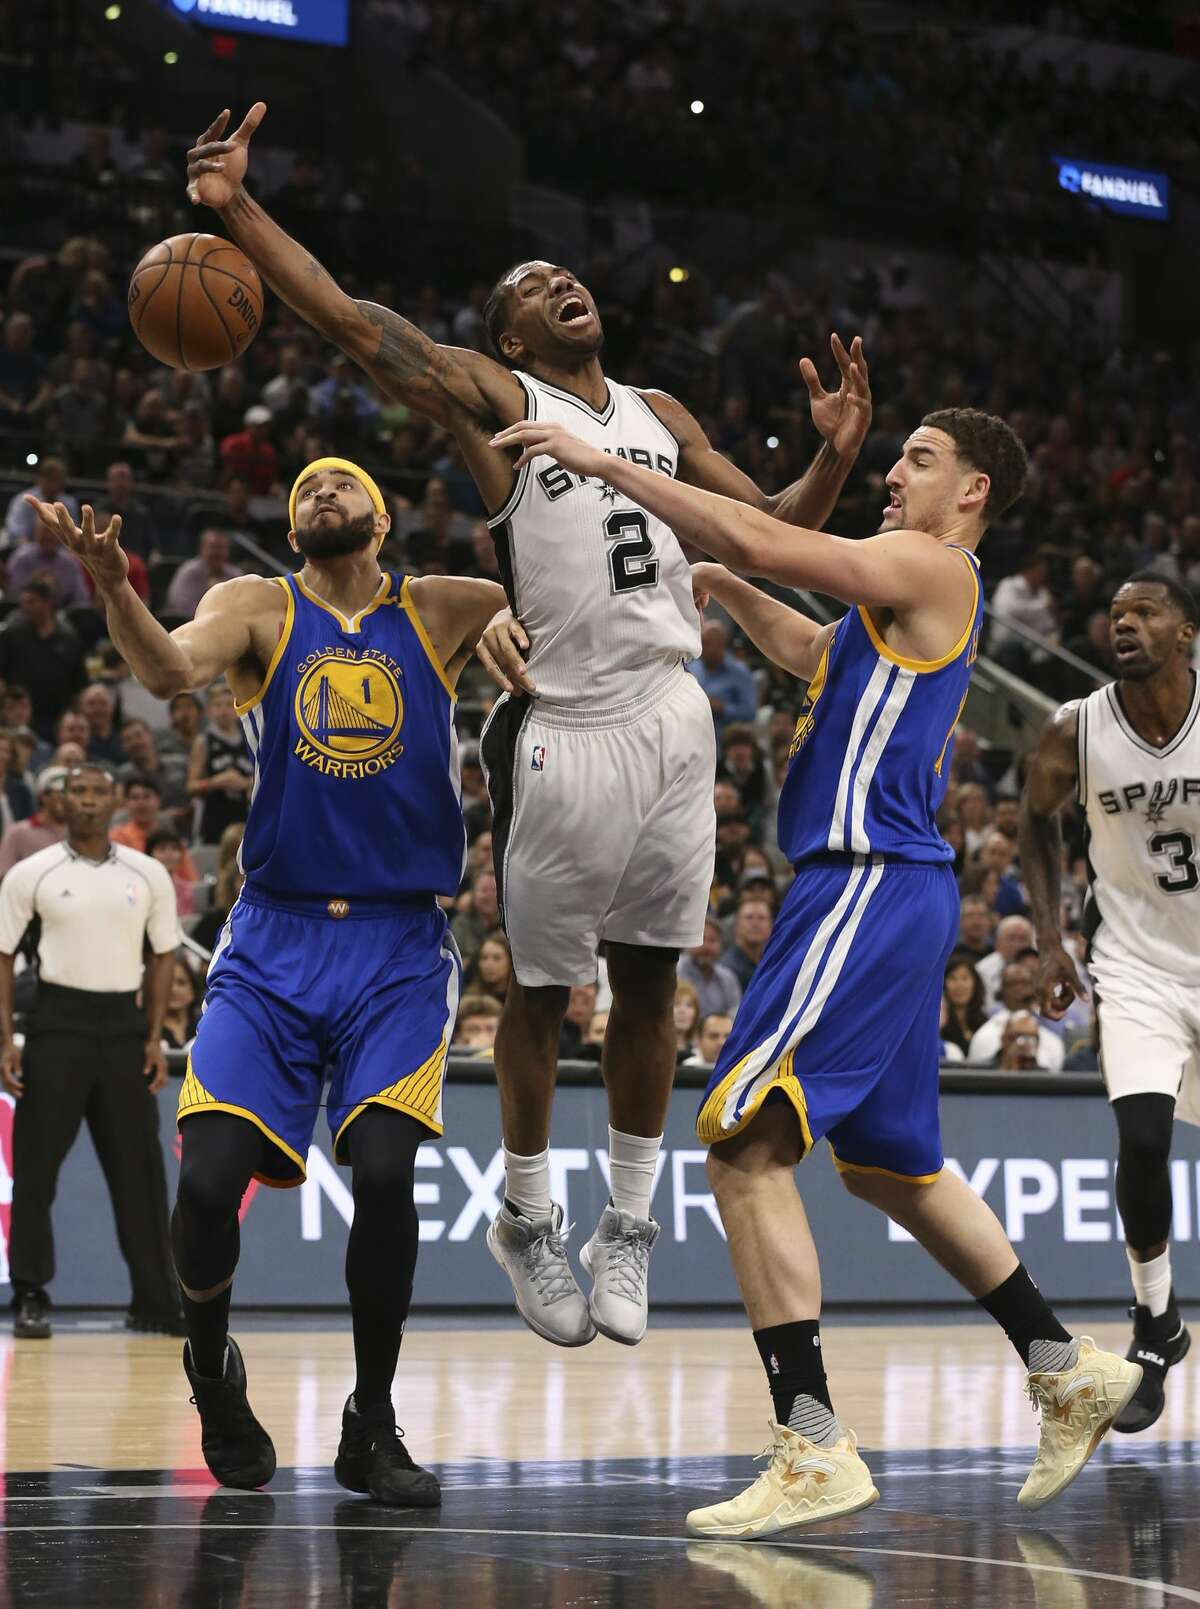 San Antonio Spurs?' Kawhi Leonard gets fouled by Golden State Warriors' Klay Thompson, right, as JaVale McGee assists during the first half at the AT&T Center, Wednesday, March 29, 2017.